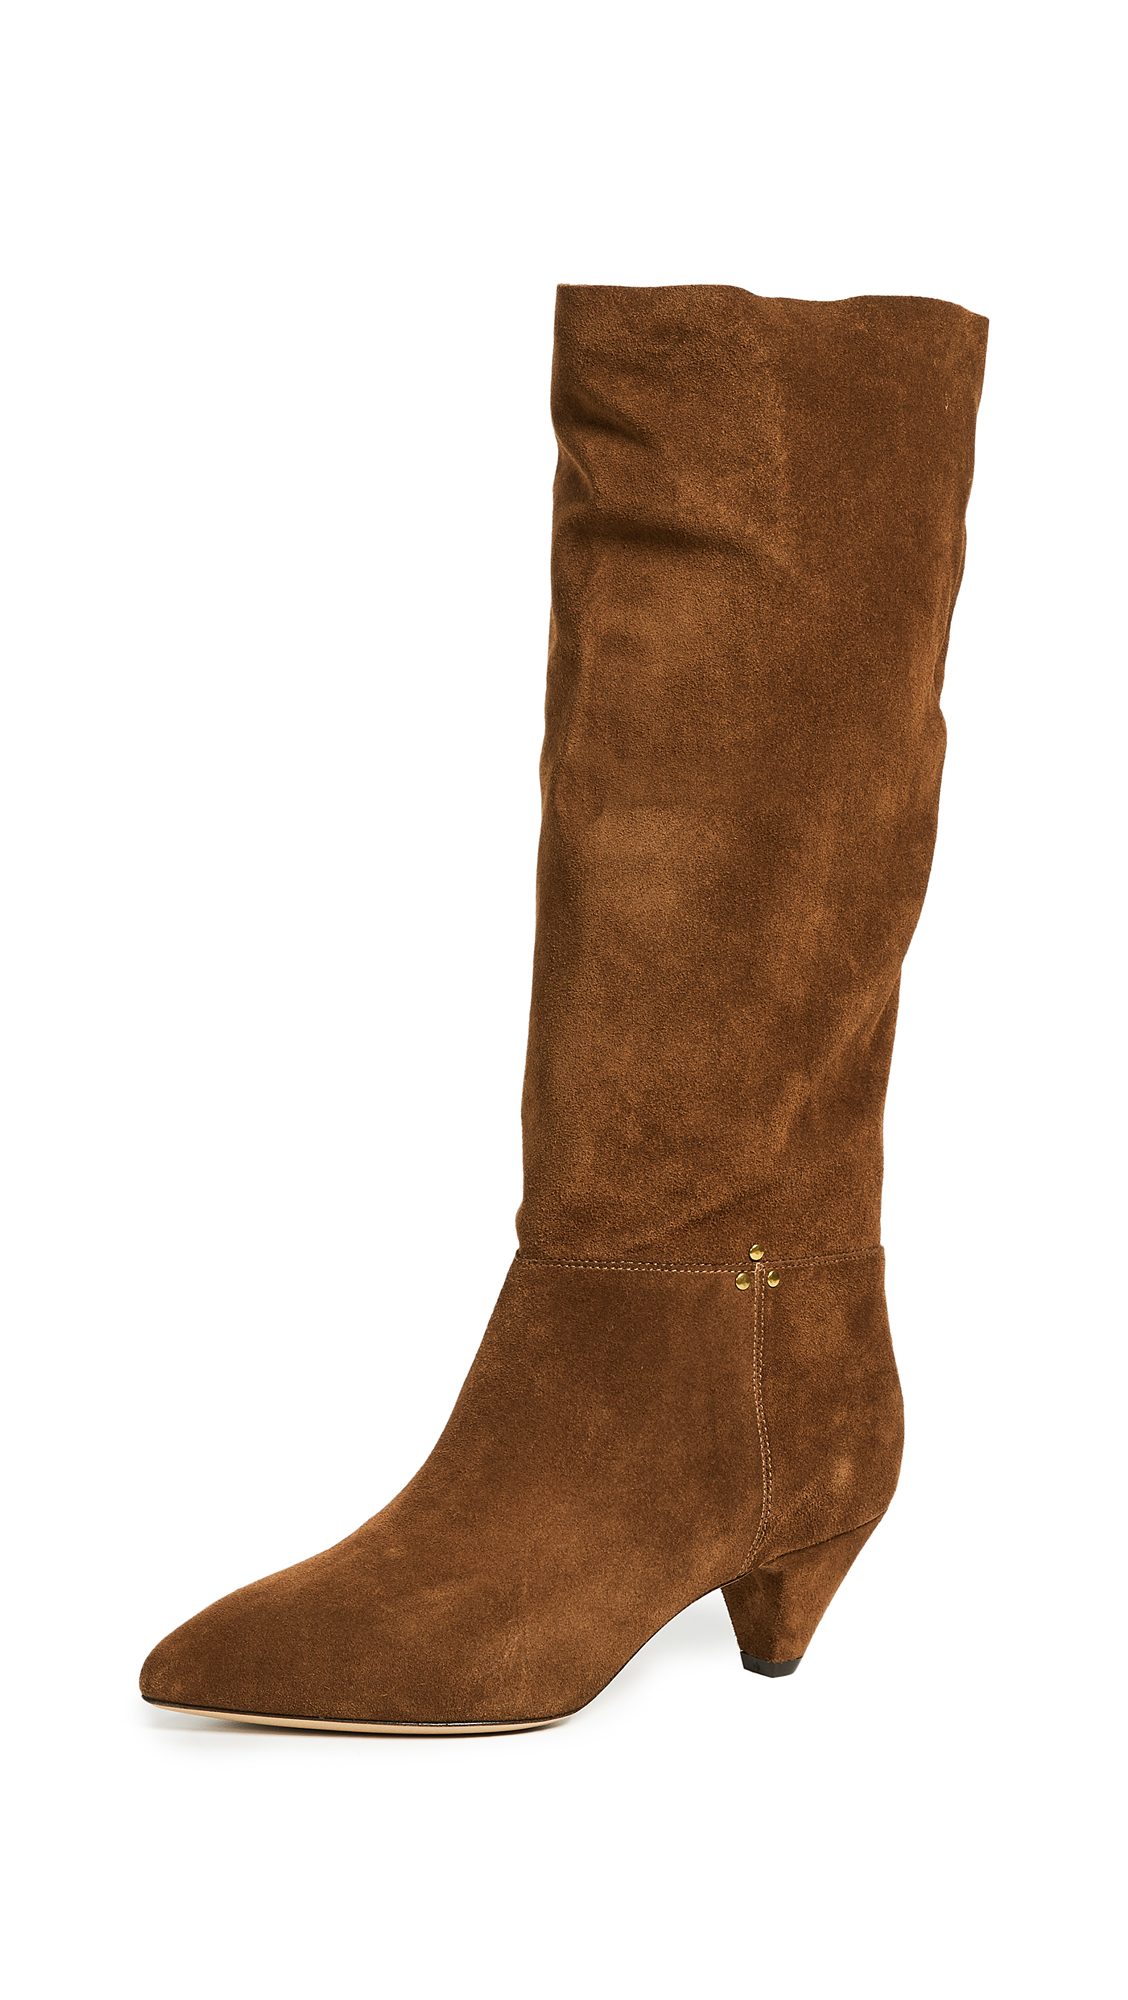 Jerome Dreyfuss Sandie 50mm Boots - Tabac